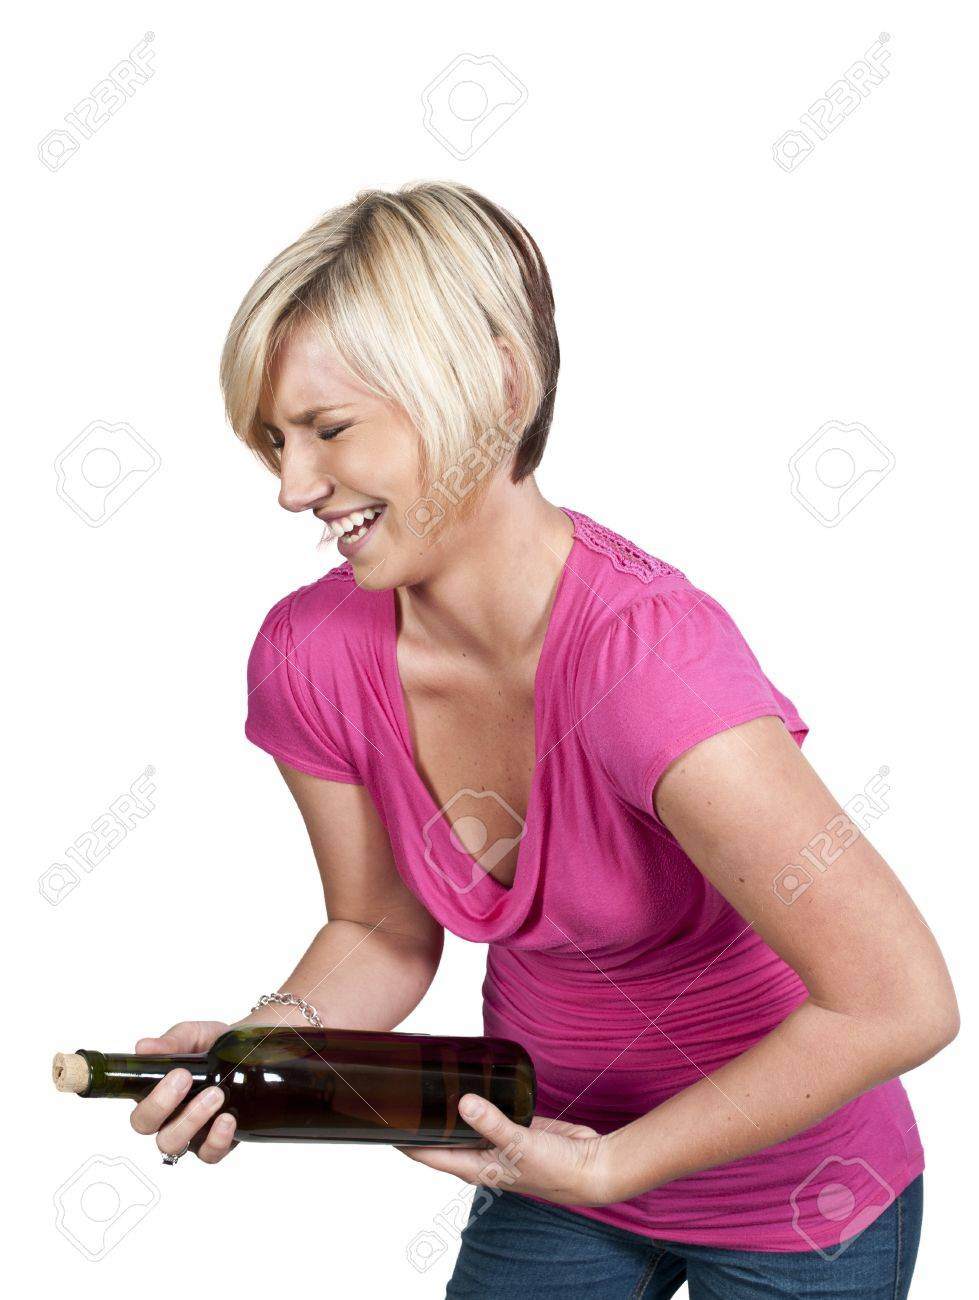 A young Beautiful Woman with a lovely smile laughing Stock Photo - 10857791